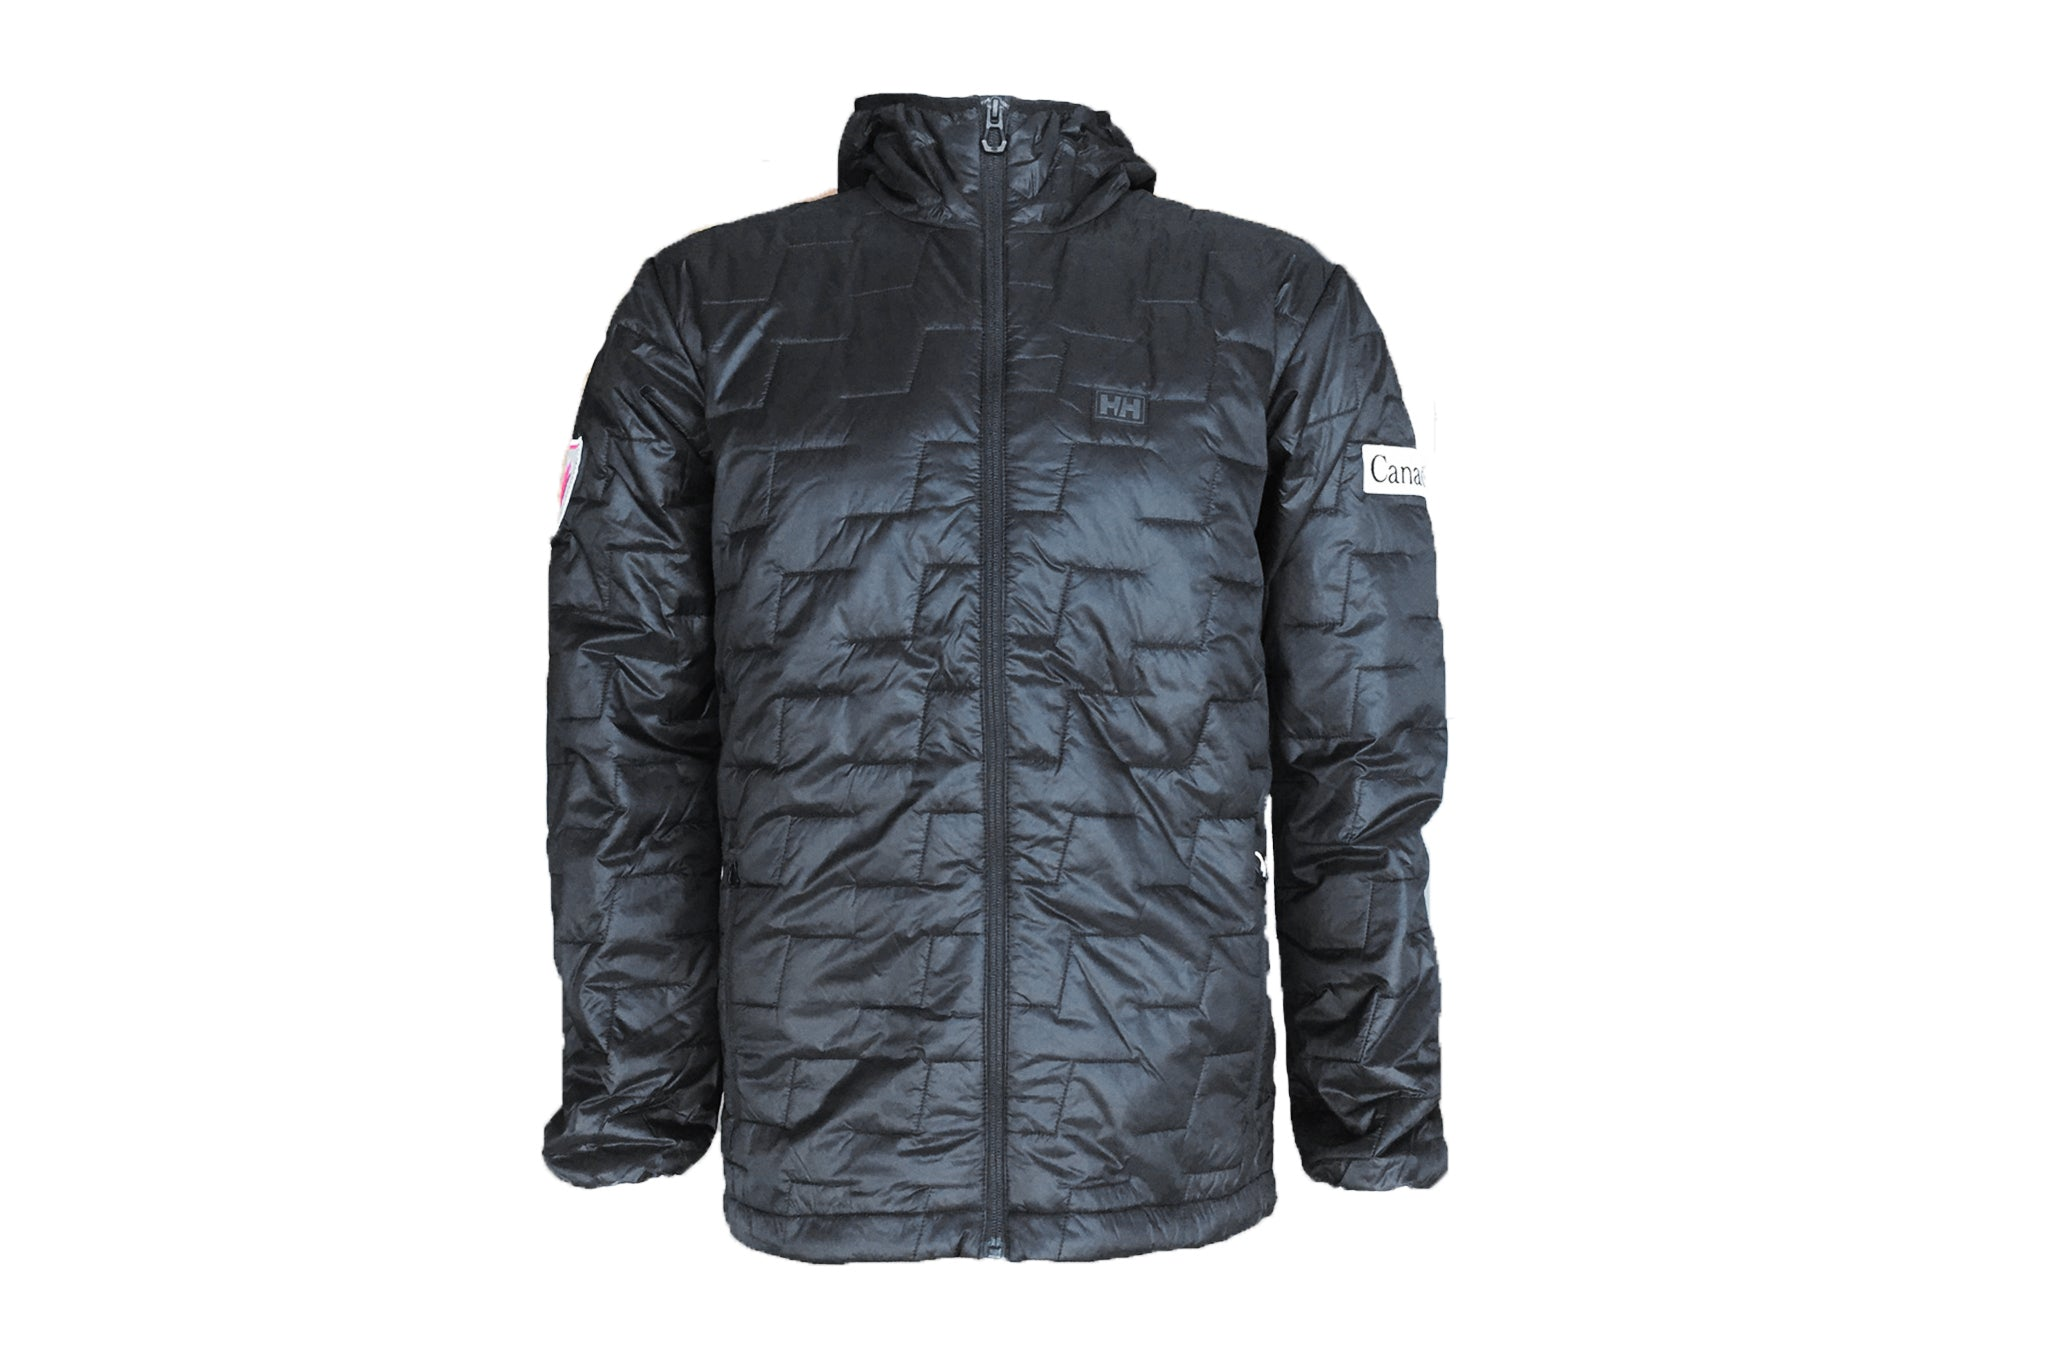 Lifaloft Hooded Insulator Jacket · Manteau à capuchon